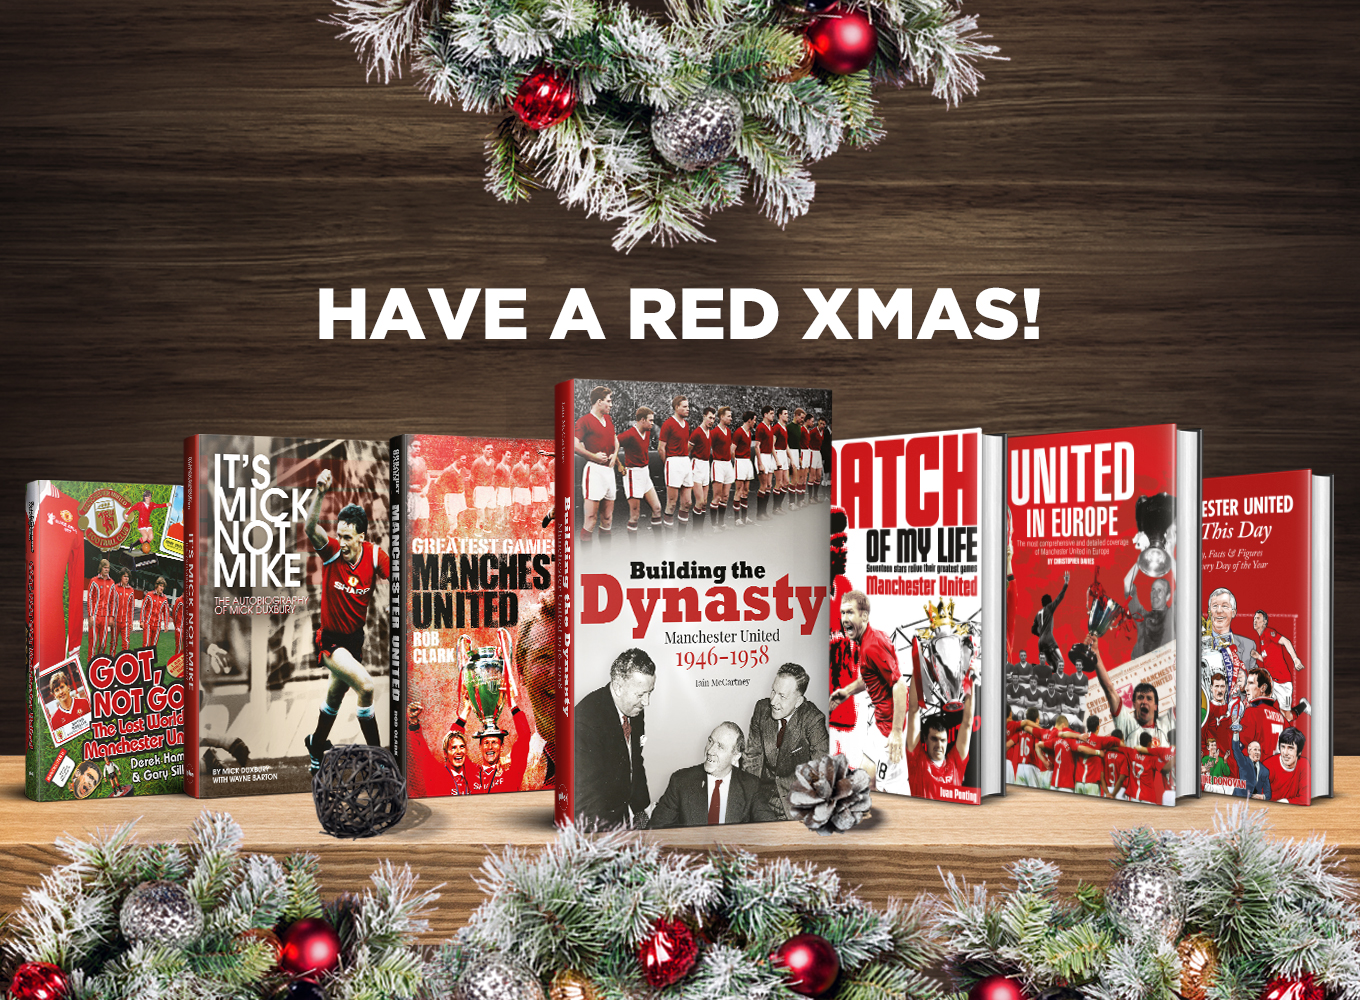 Have a Red Xmas!